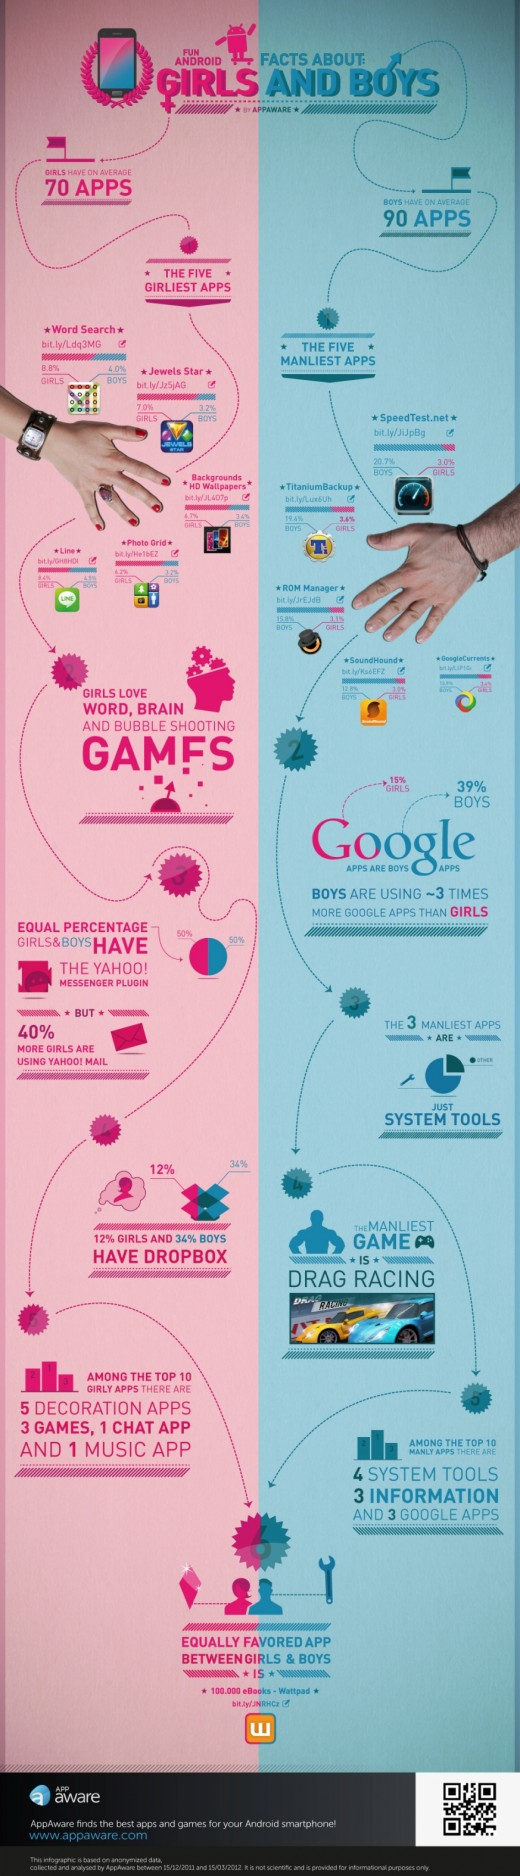 BOysGirlsApps 520x1876 Gender differences: Men like system tools apps and women like Yahoo! Mail, apparently [Infographic]